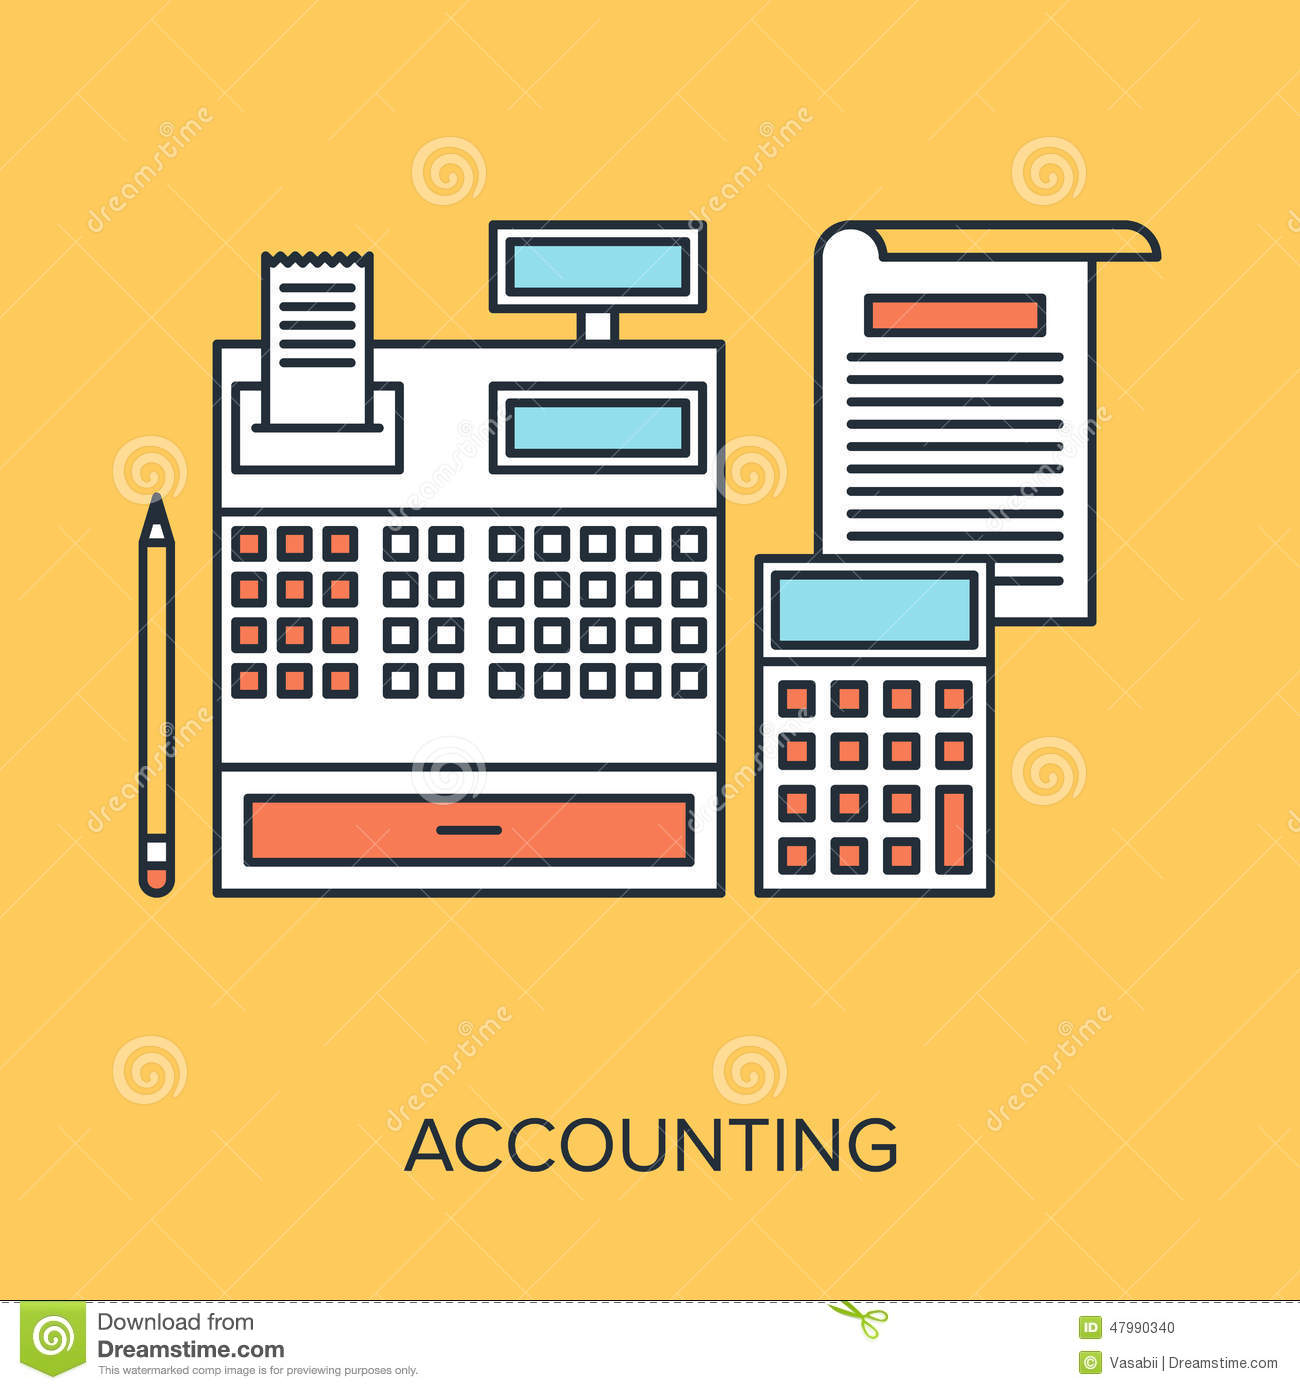 Illustration music accounting